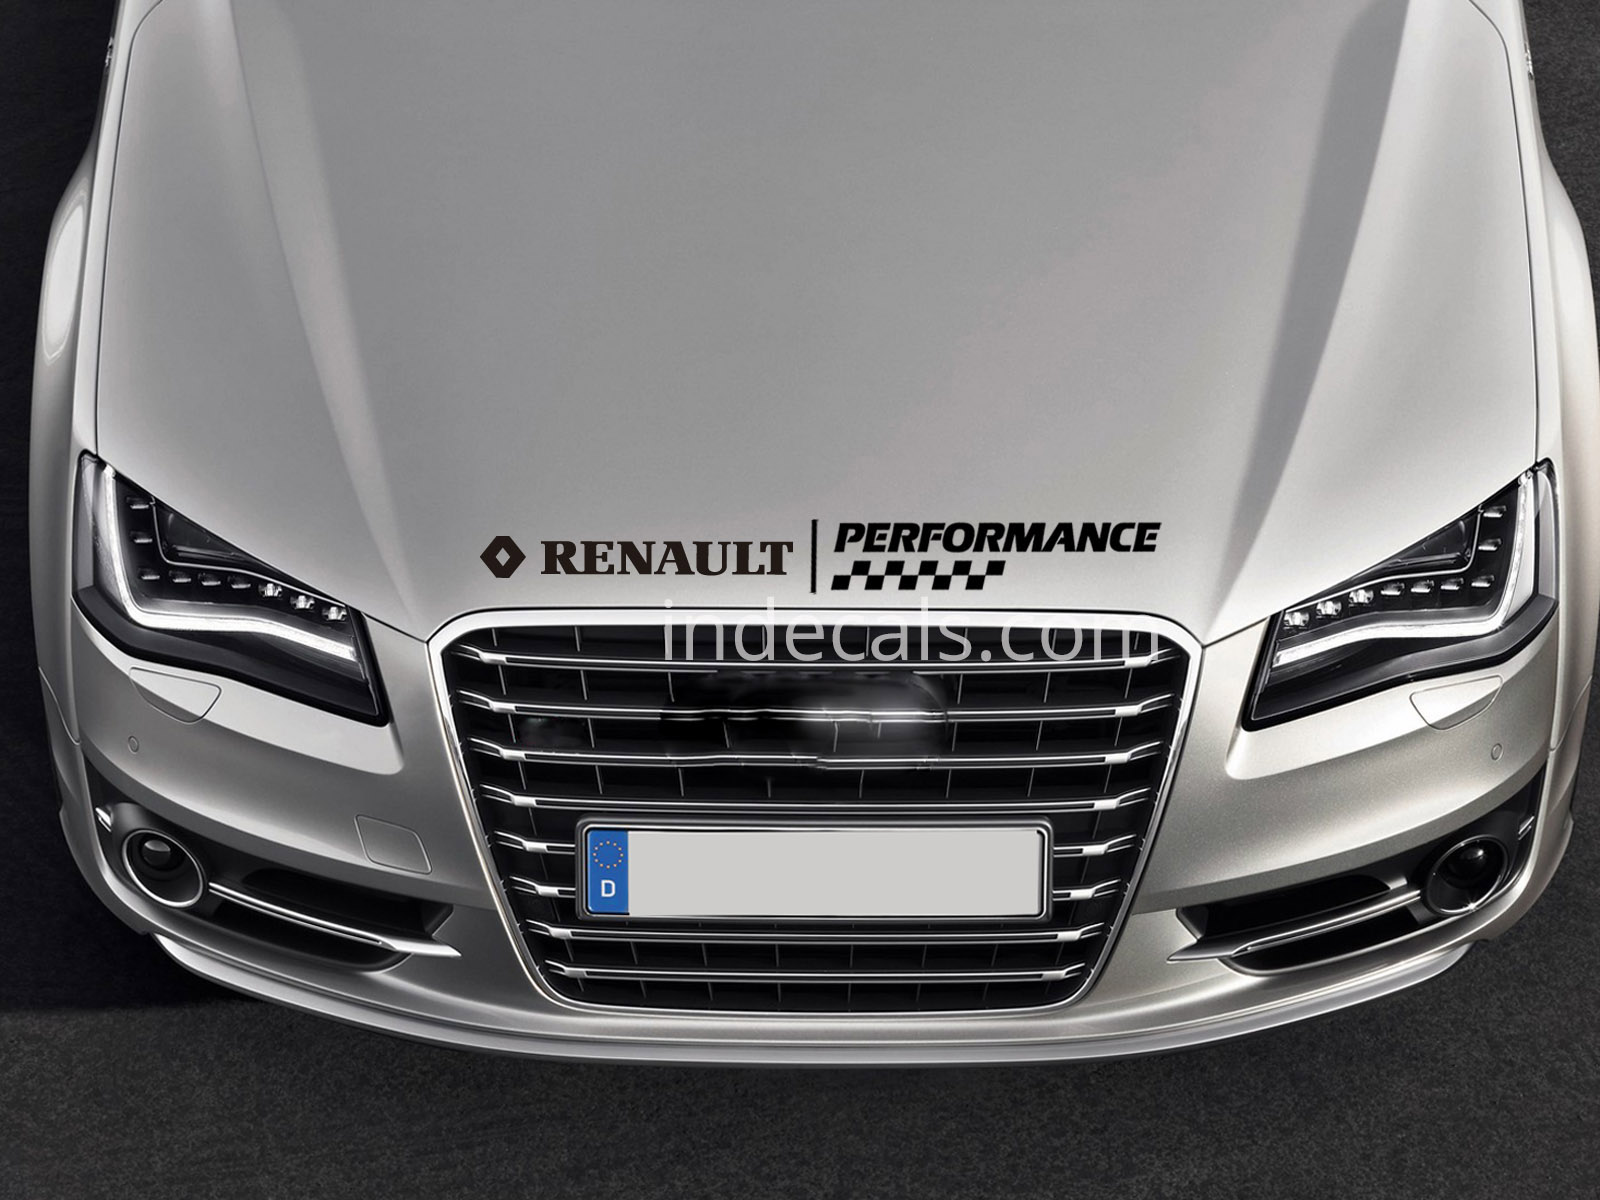 1 x Renault Performance Sticker for Bonnet - Black